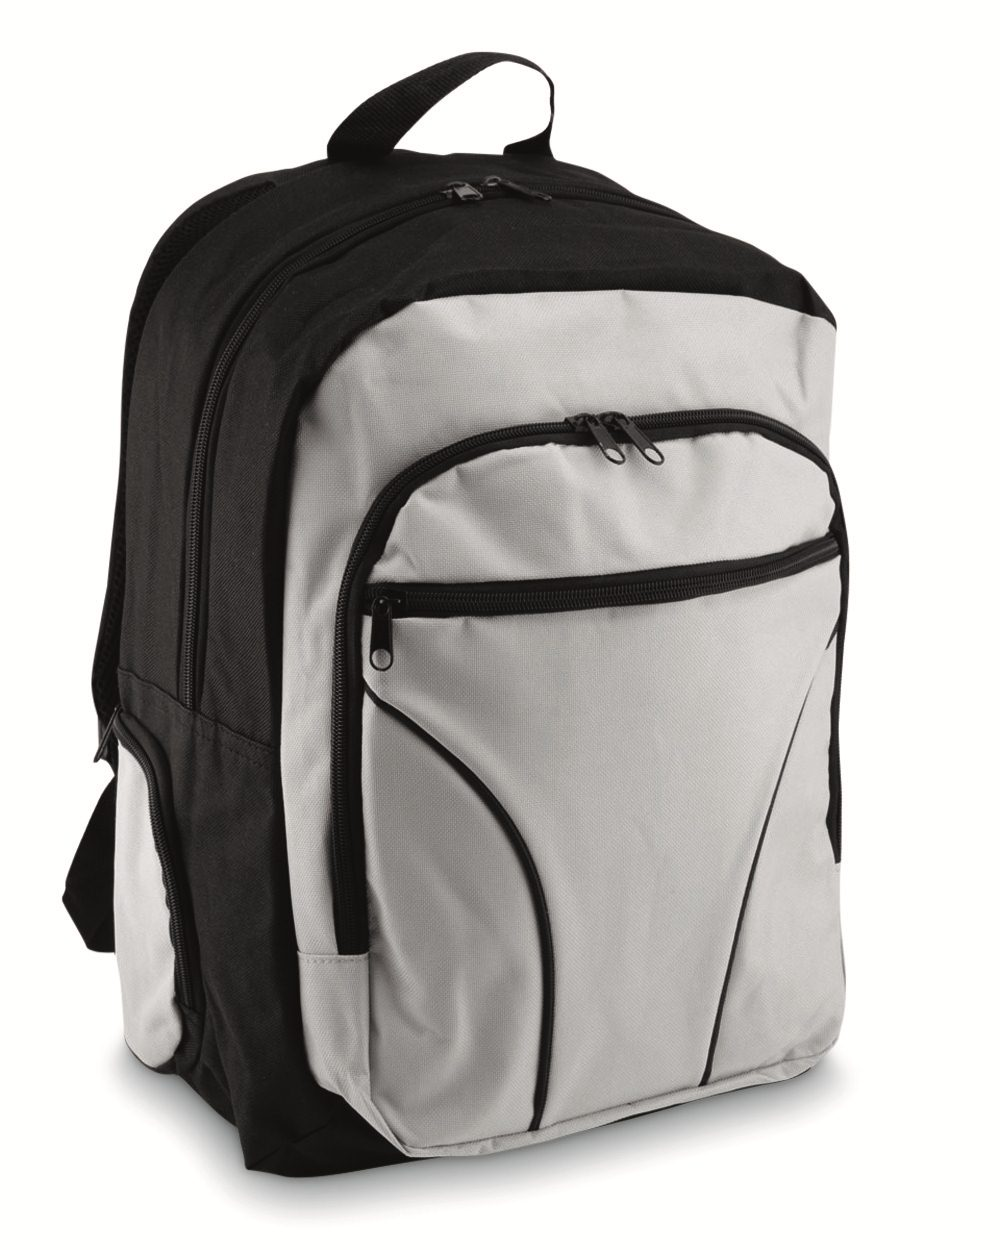 Valubag 19 Inch Laptop Backpack - VB1157 $11.34 - Bags